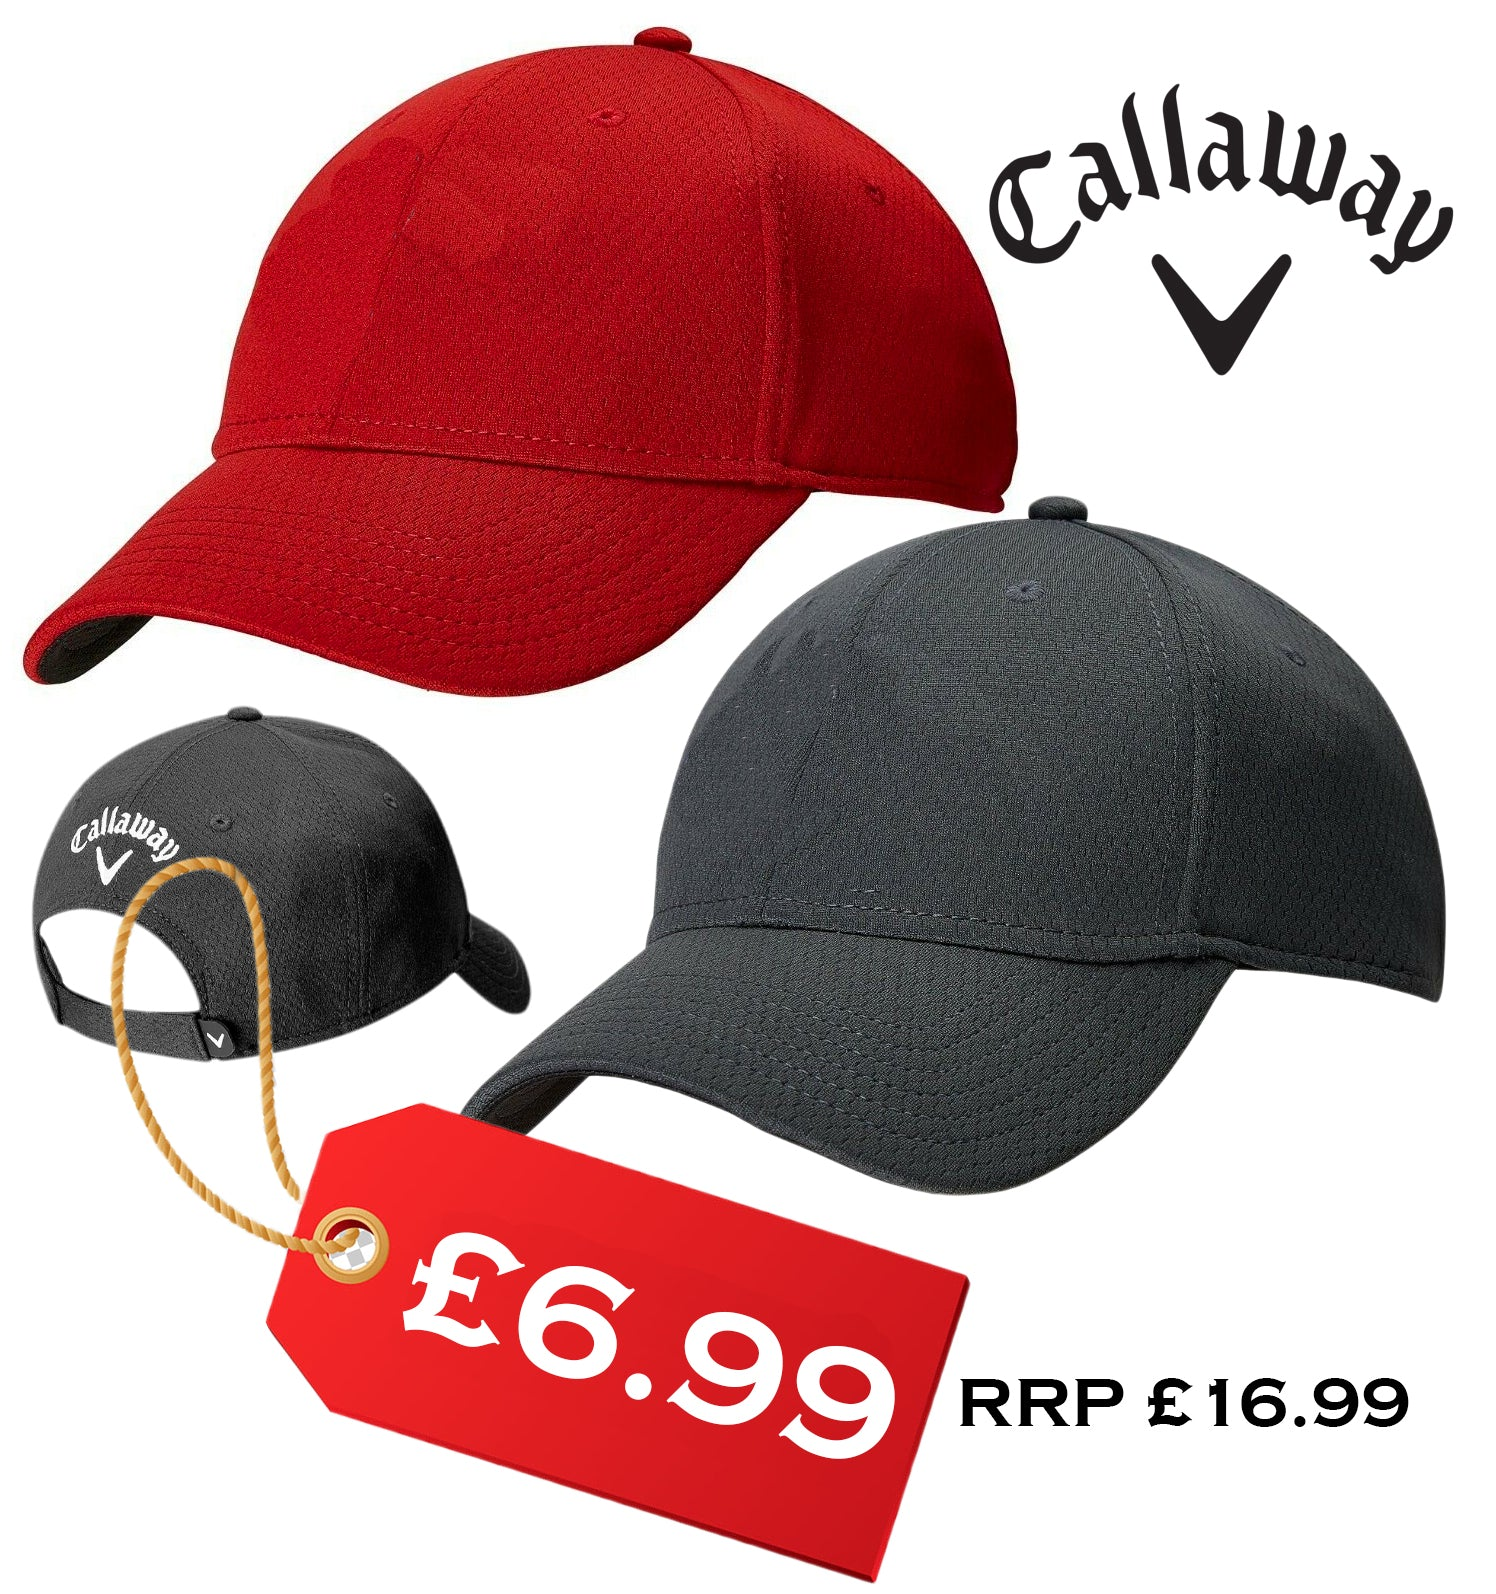 New Callaway Performance Series Tour 30+ UV Protection Golf Cap / Hat Blank Front